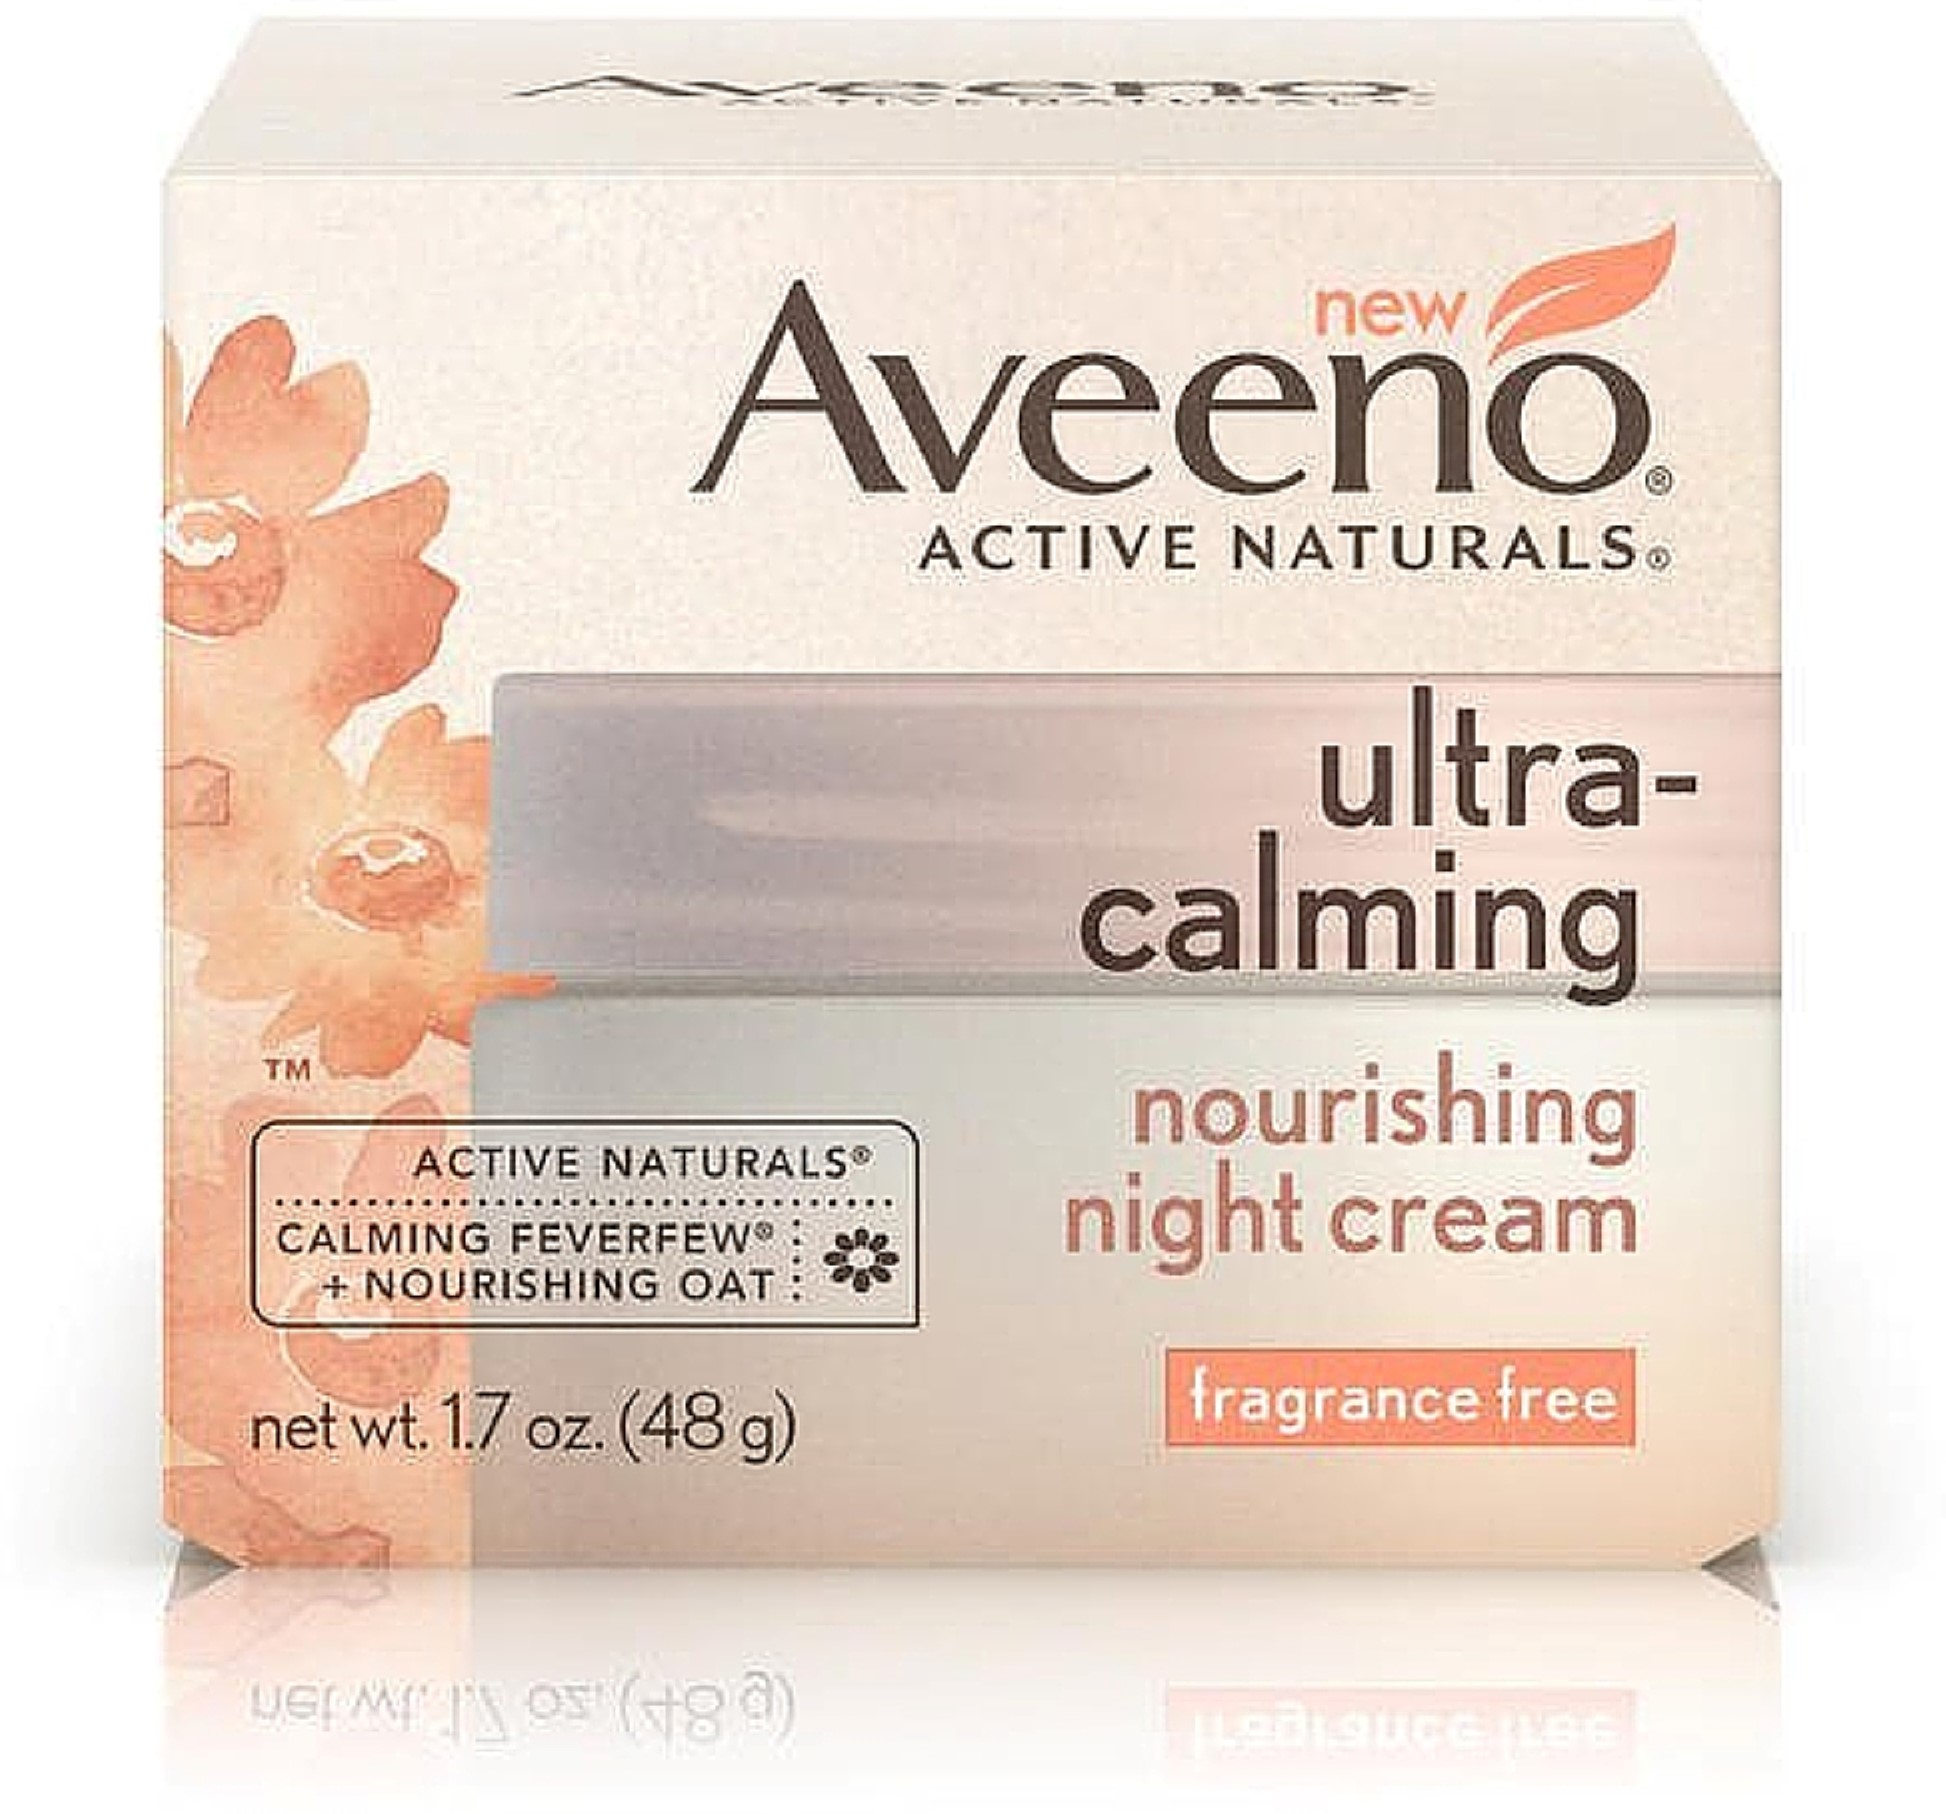 AVEENO Active Naturals Ultra-Calming Nourishing Night Cream, Fragrance Free 1.70 oz (Pack of 2)